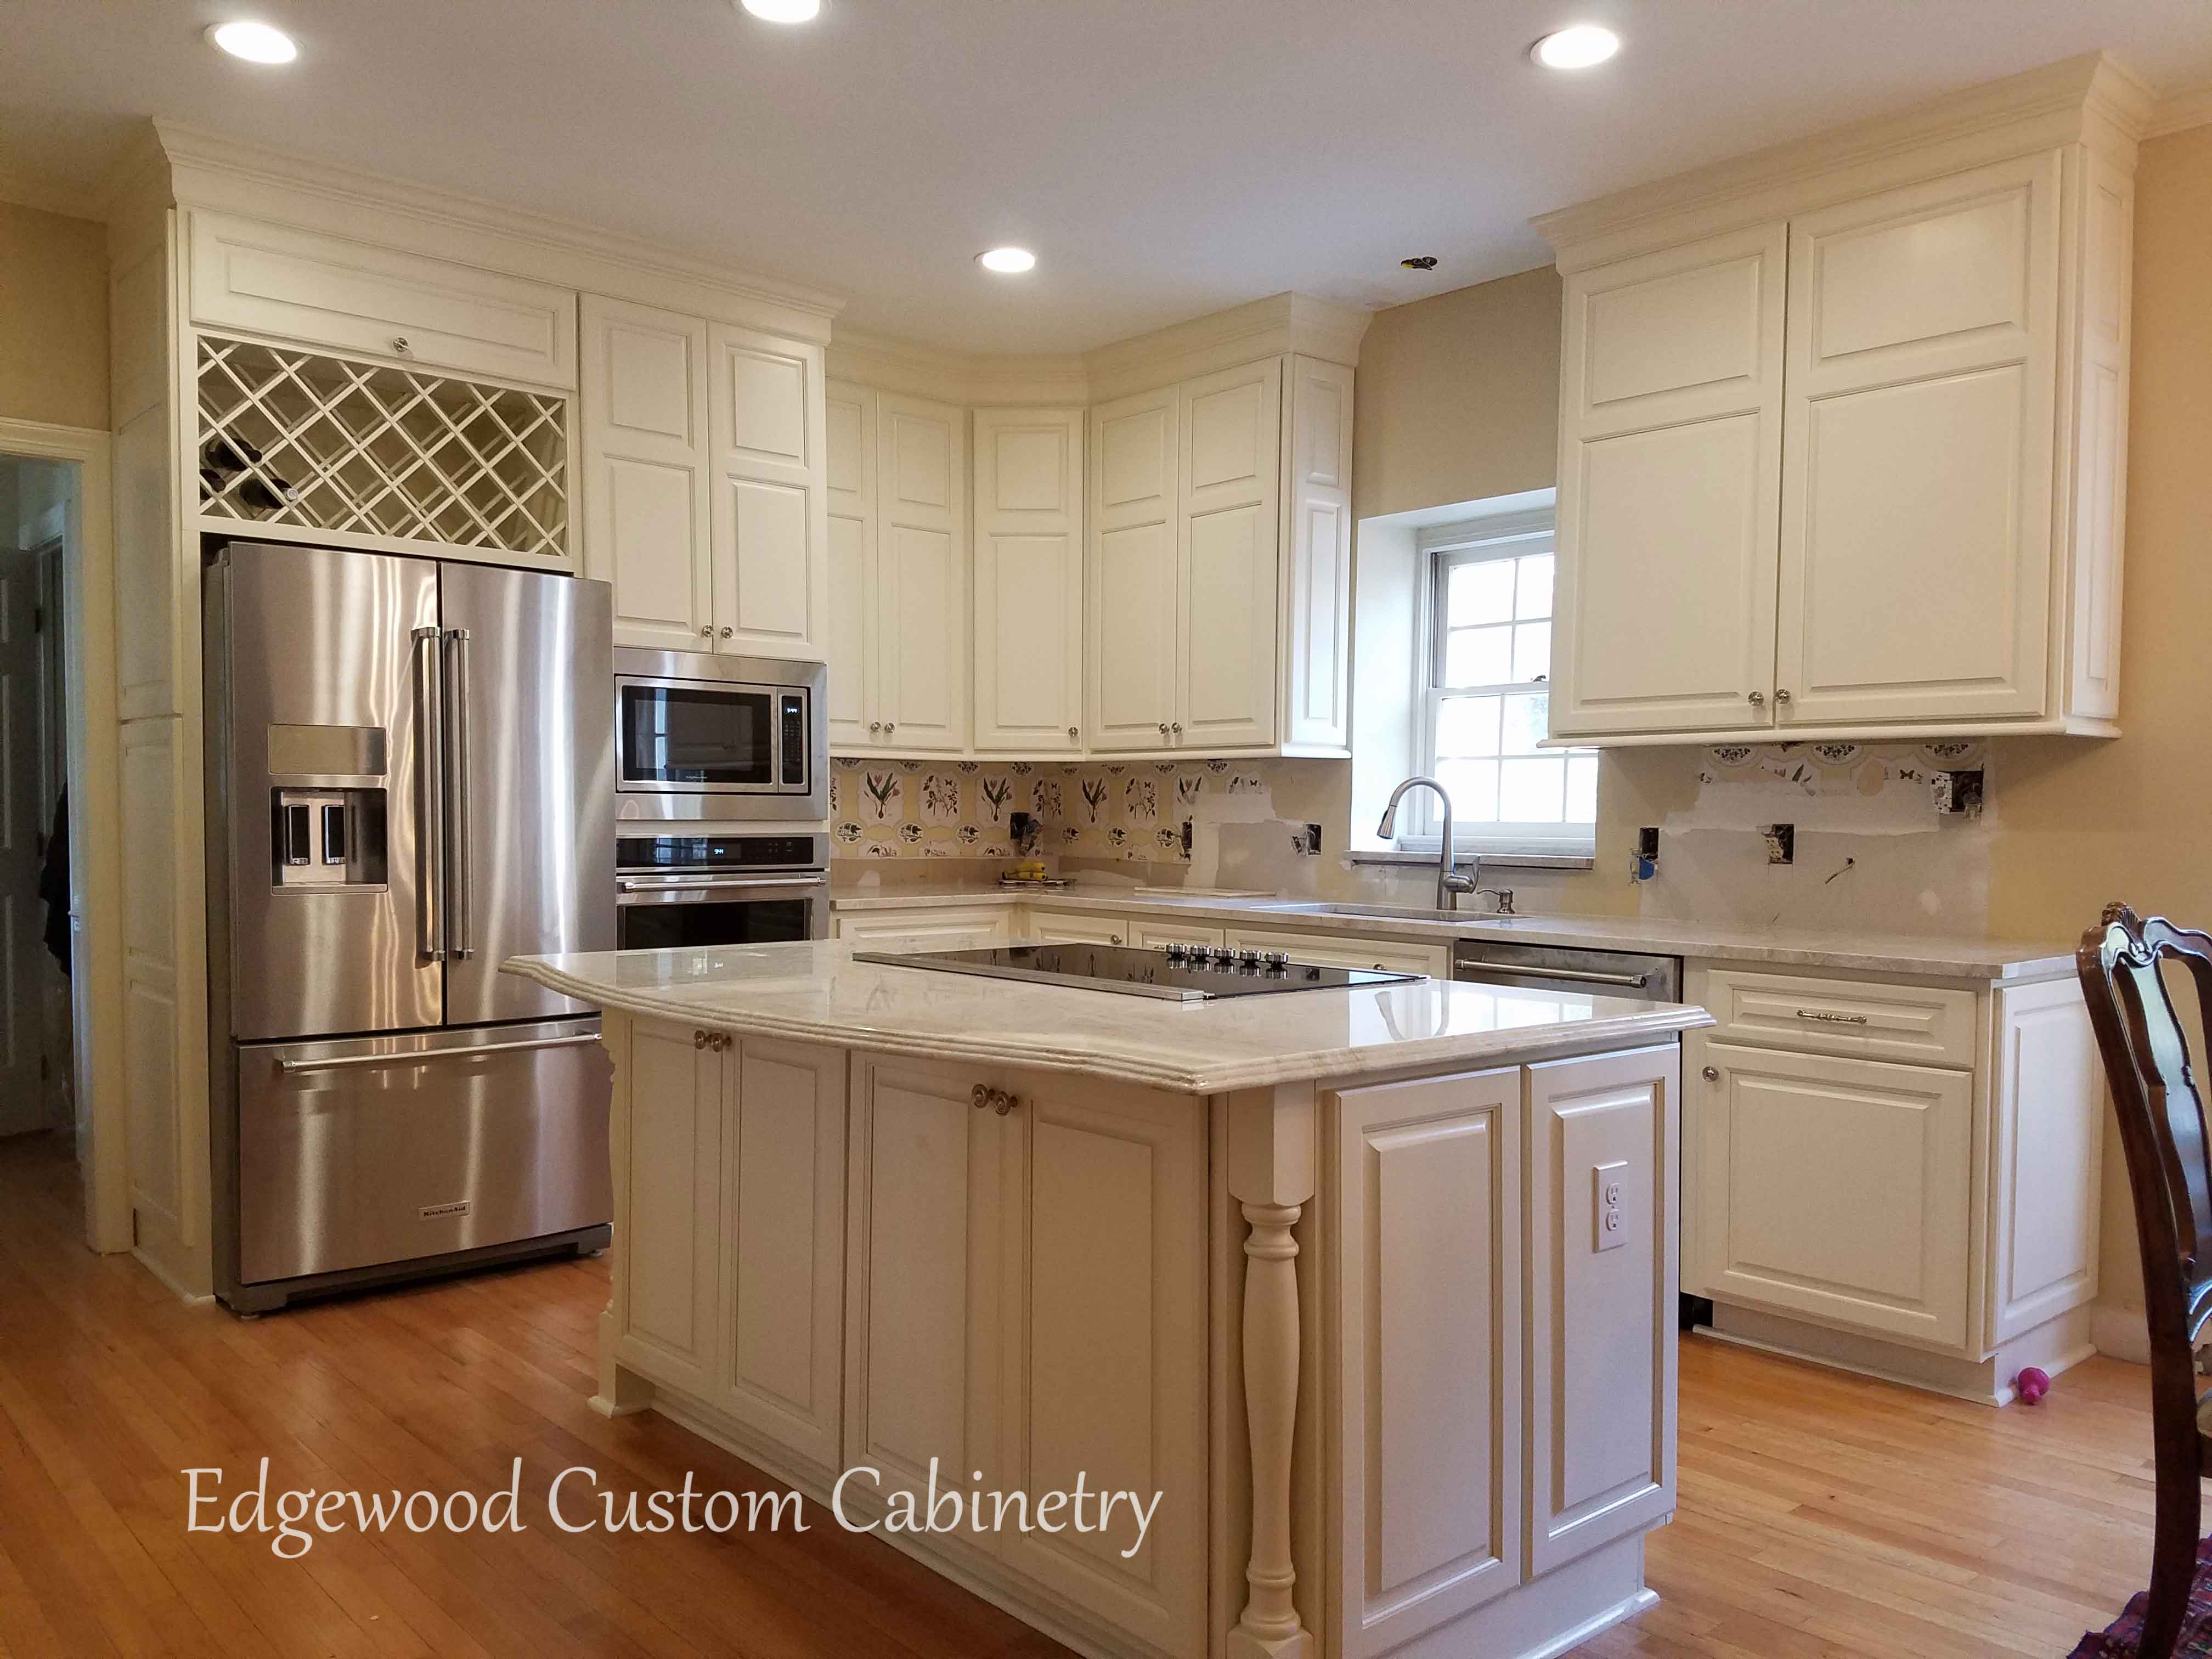 (click Any Picture To Enlarge). Kitchen Design Trends 2017 Edgewood Custom  Cabinetry